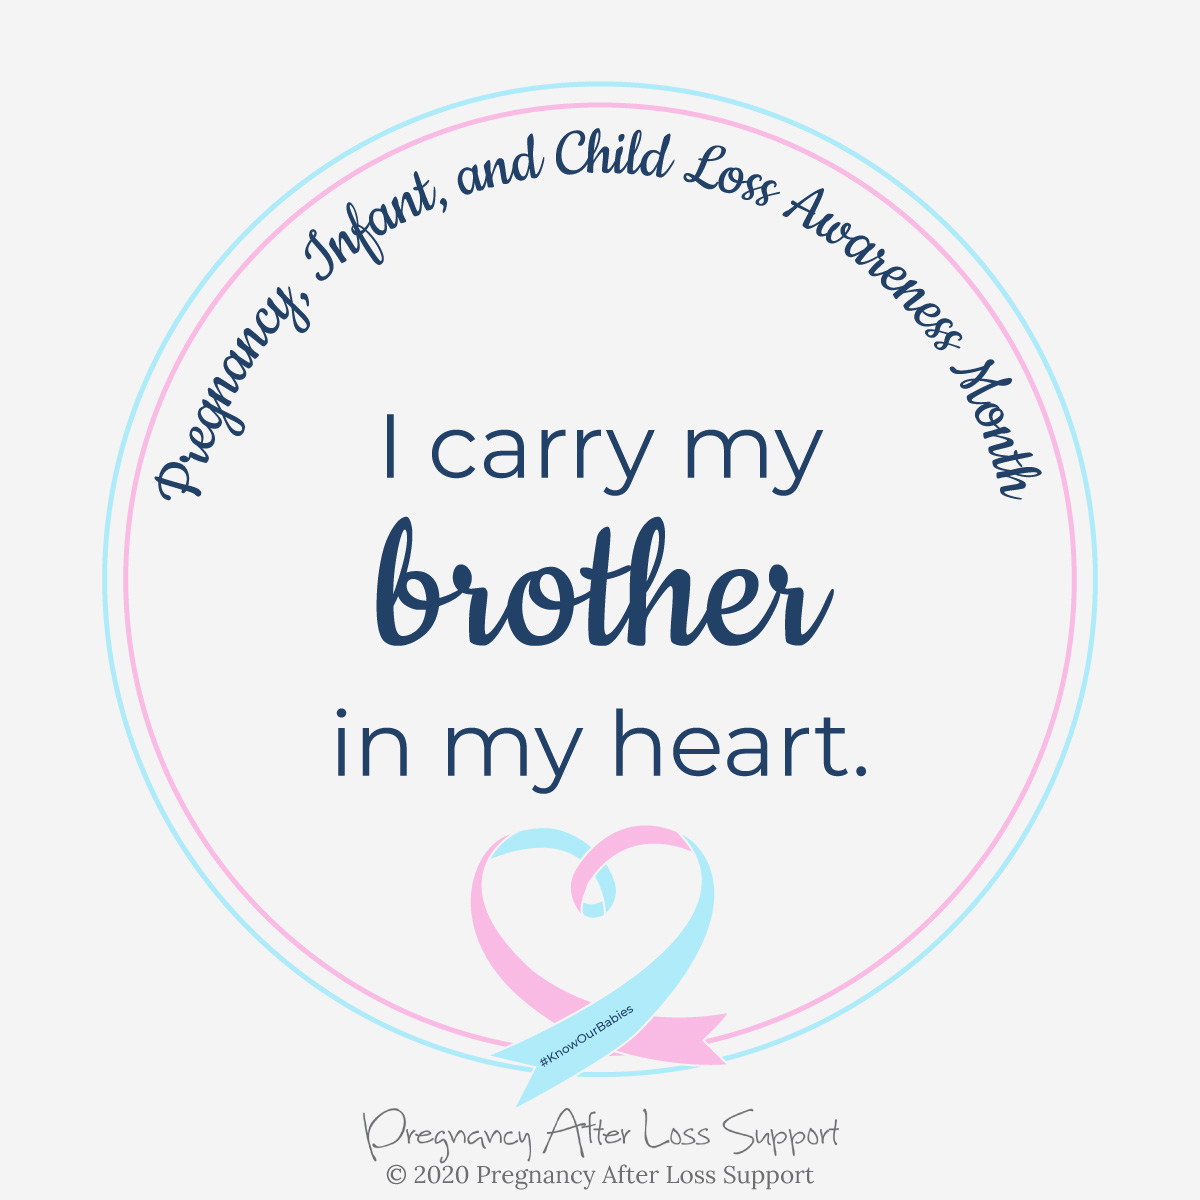 I carry my brother in my heart - Pregnancy, Infant, and Child Loss Awareness Month